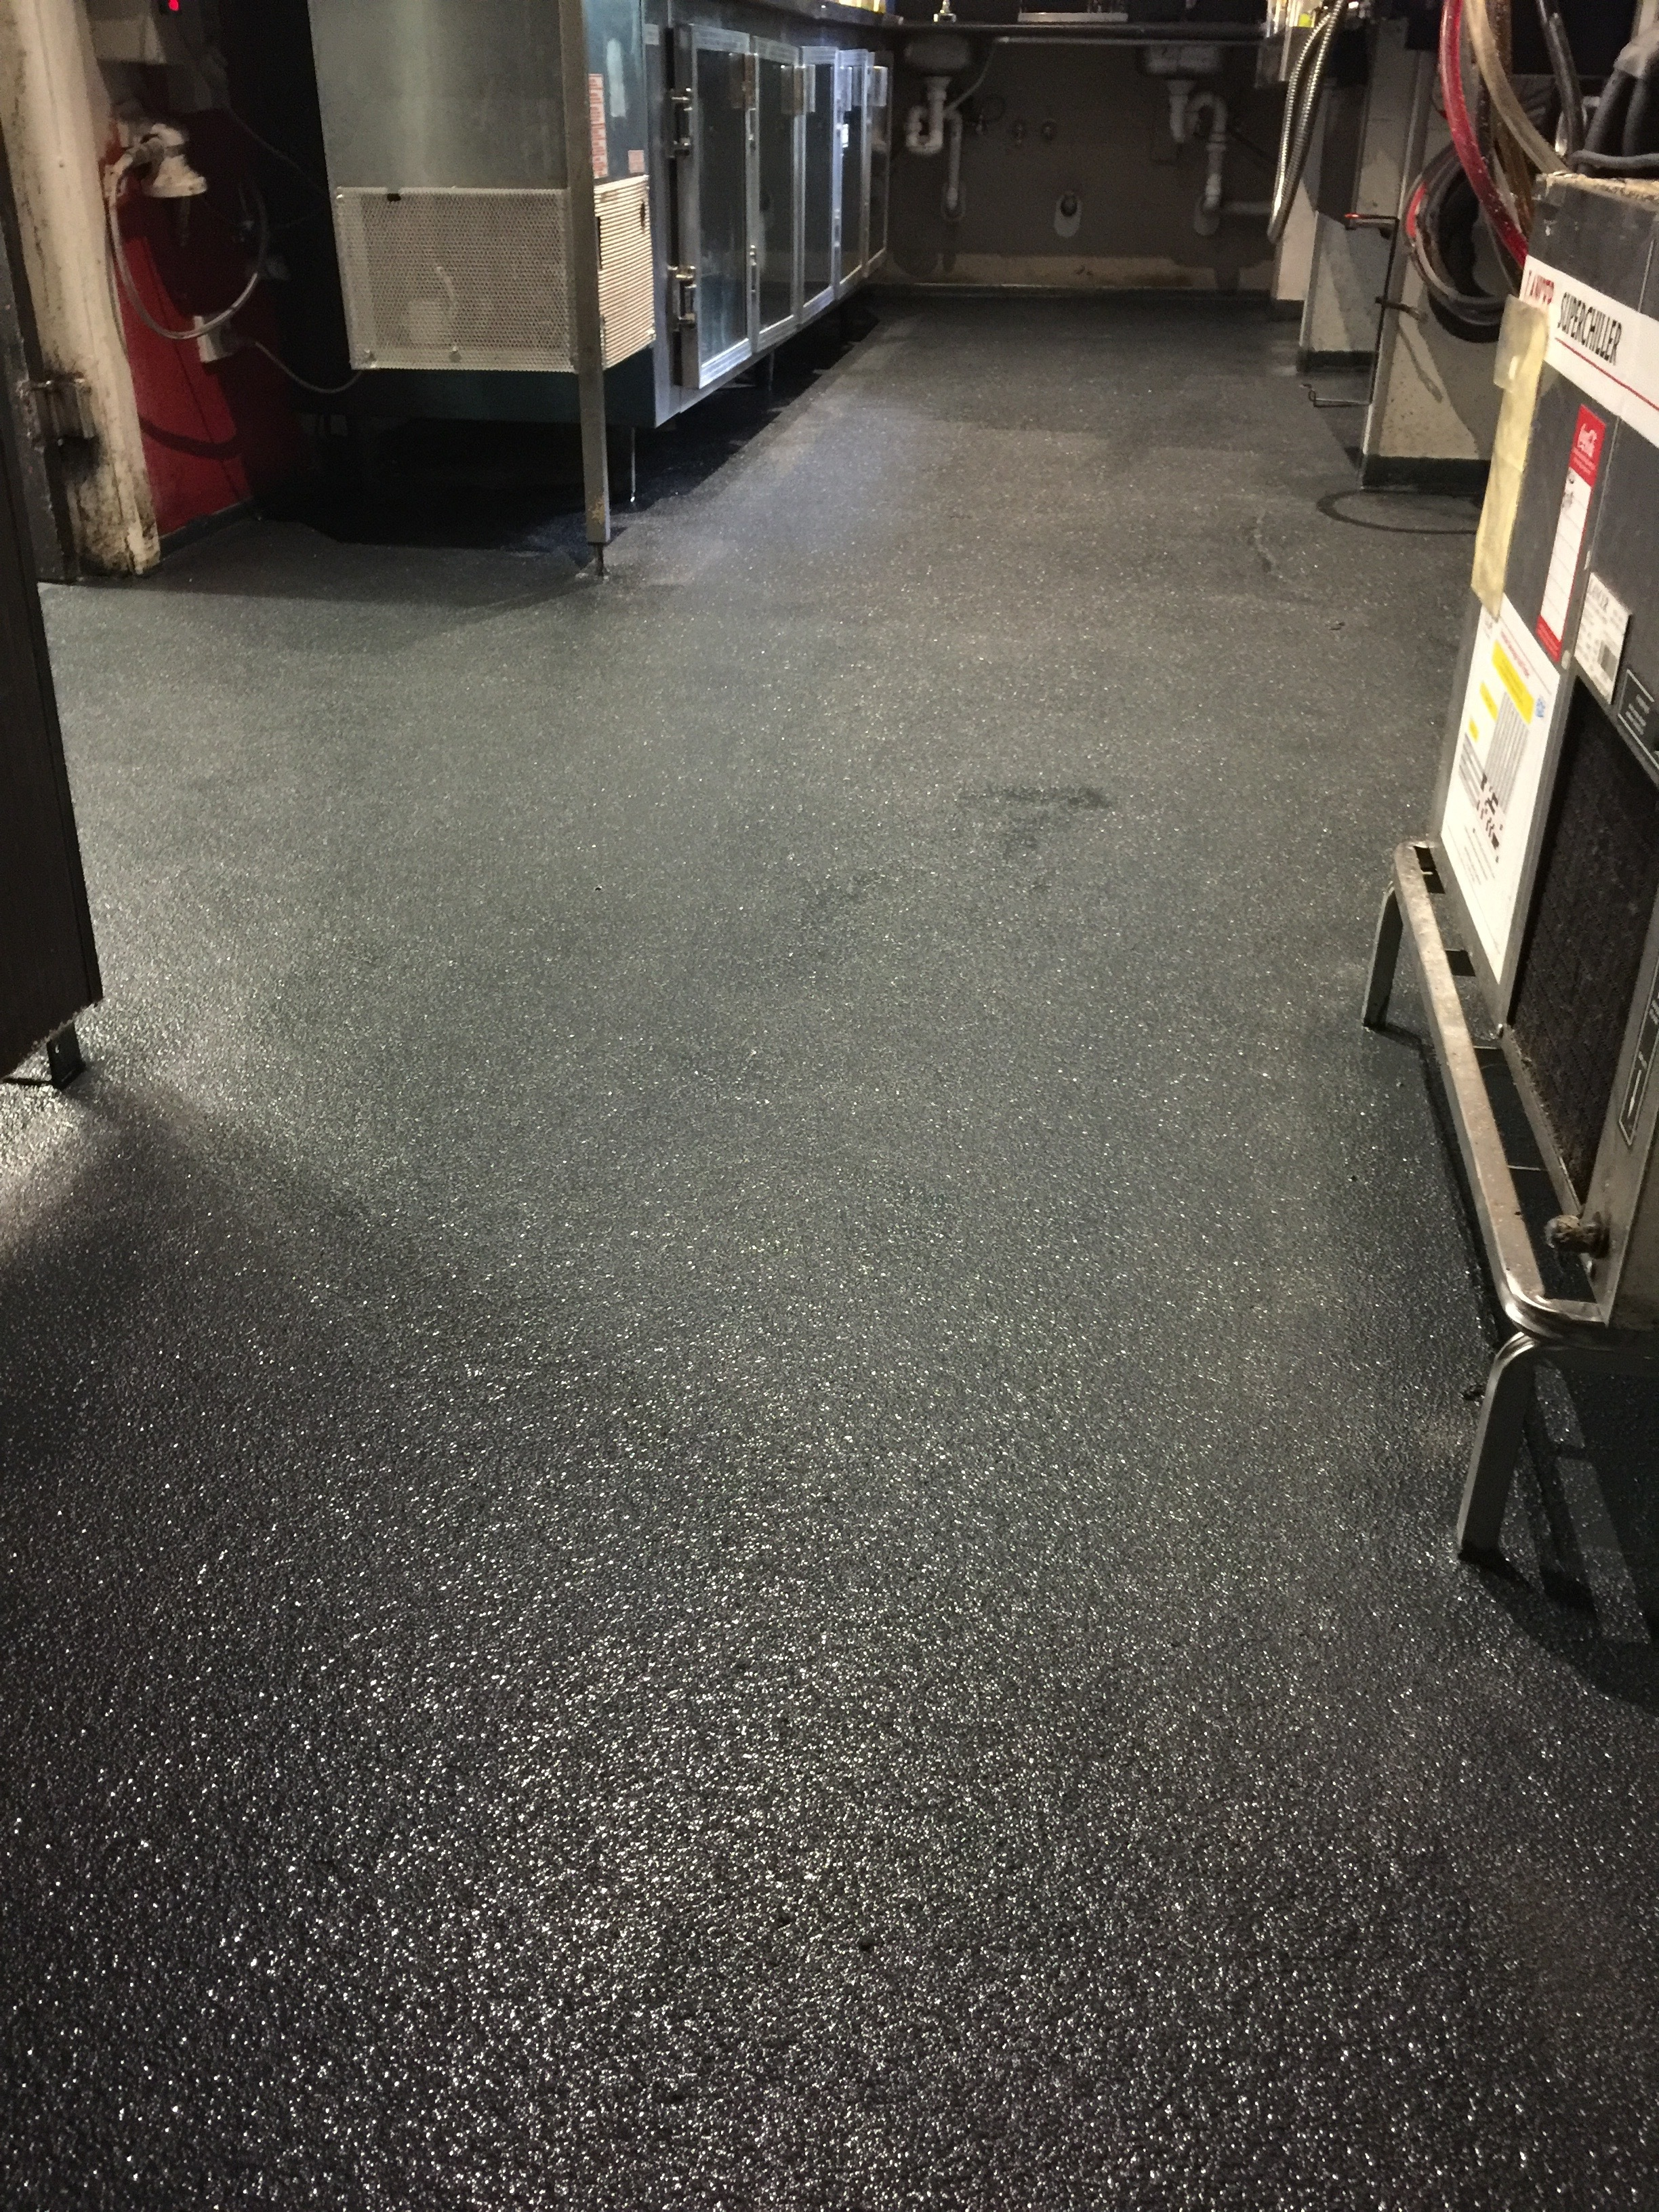 Commercial kitchens installation melbourne melbourne safety flooring for more information about our commercial vinyl flooring options please get in touch with the team at melbourne safety flooring on 0409 744 464 dailygadgetfo Choice Image